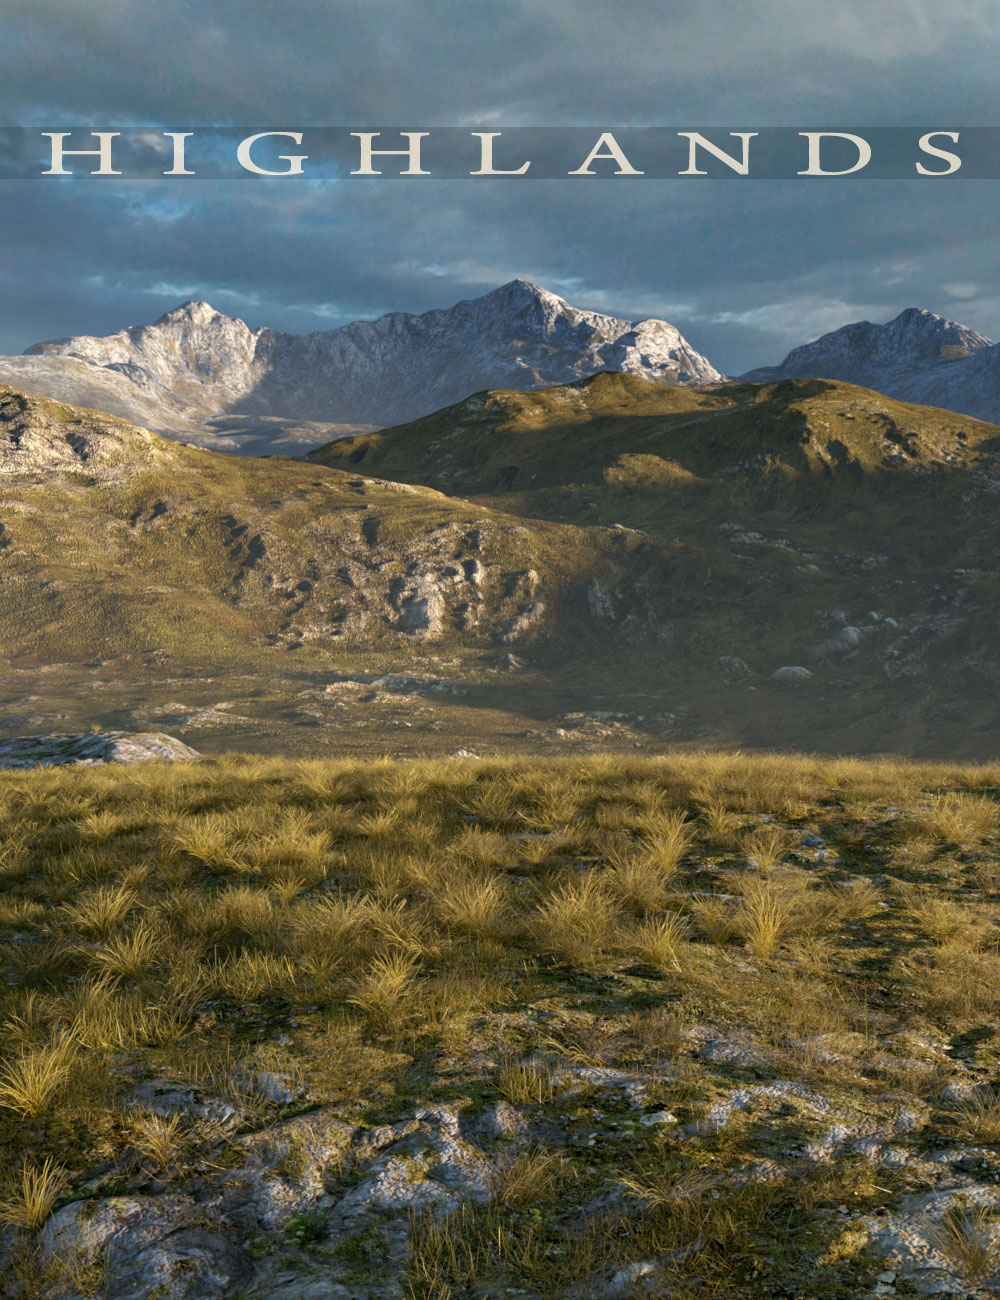 Highlands by: Aako, 3D Models by Daz 3D